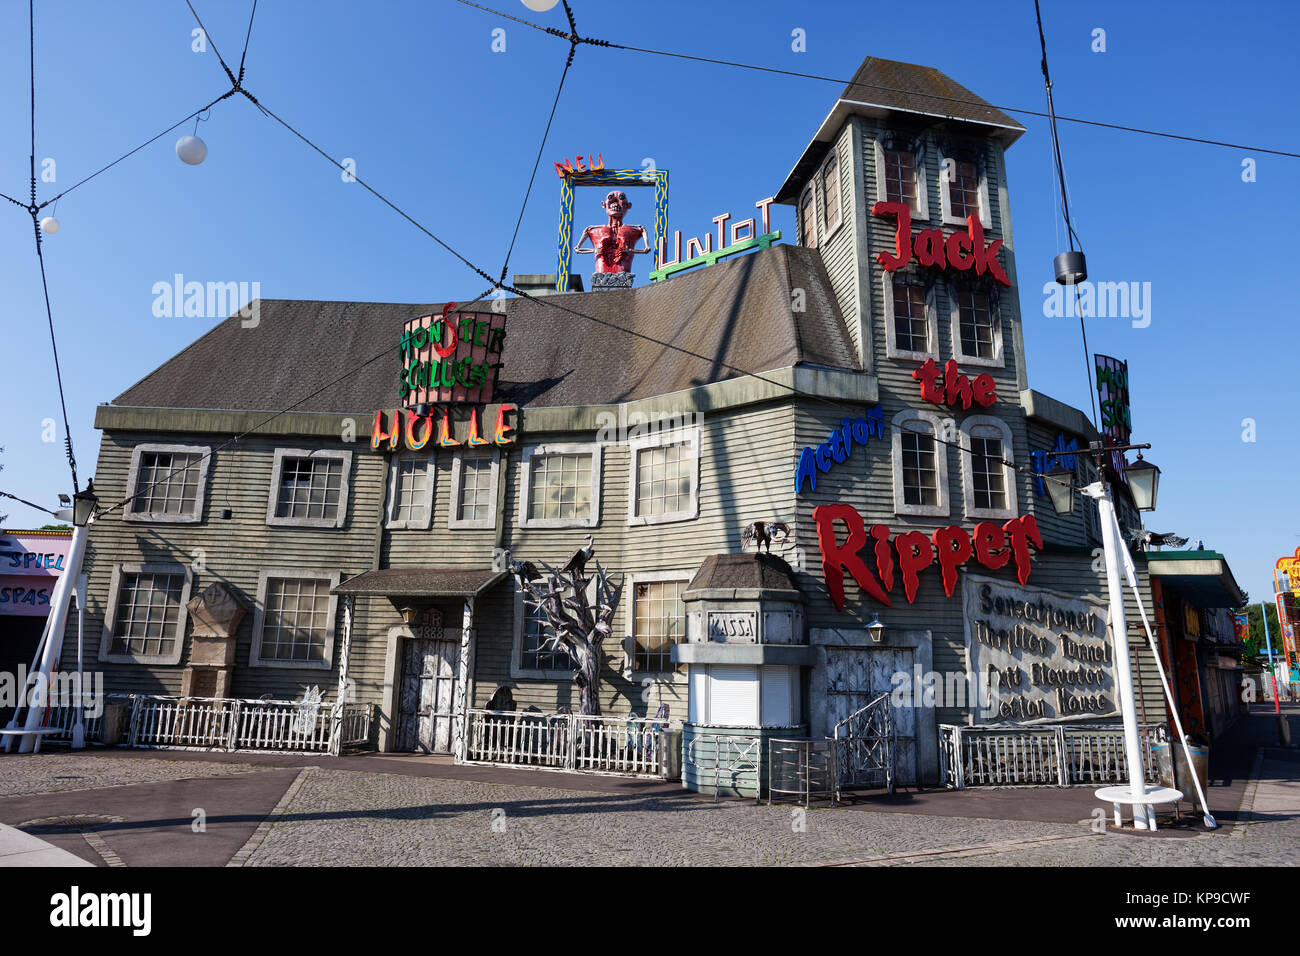 Jack The Ripper House Of Horror In Prater Amusement Park, Vienna City,  Austria, Europe